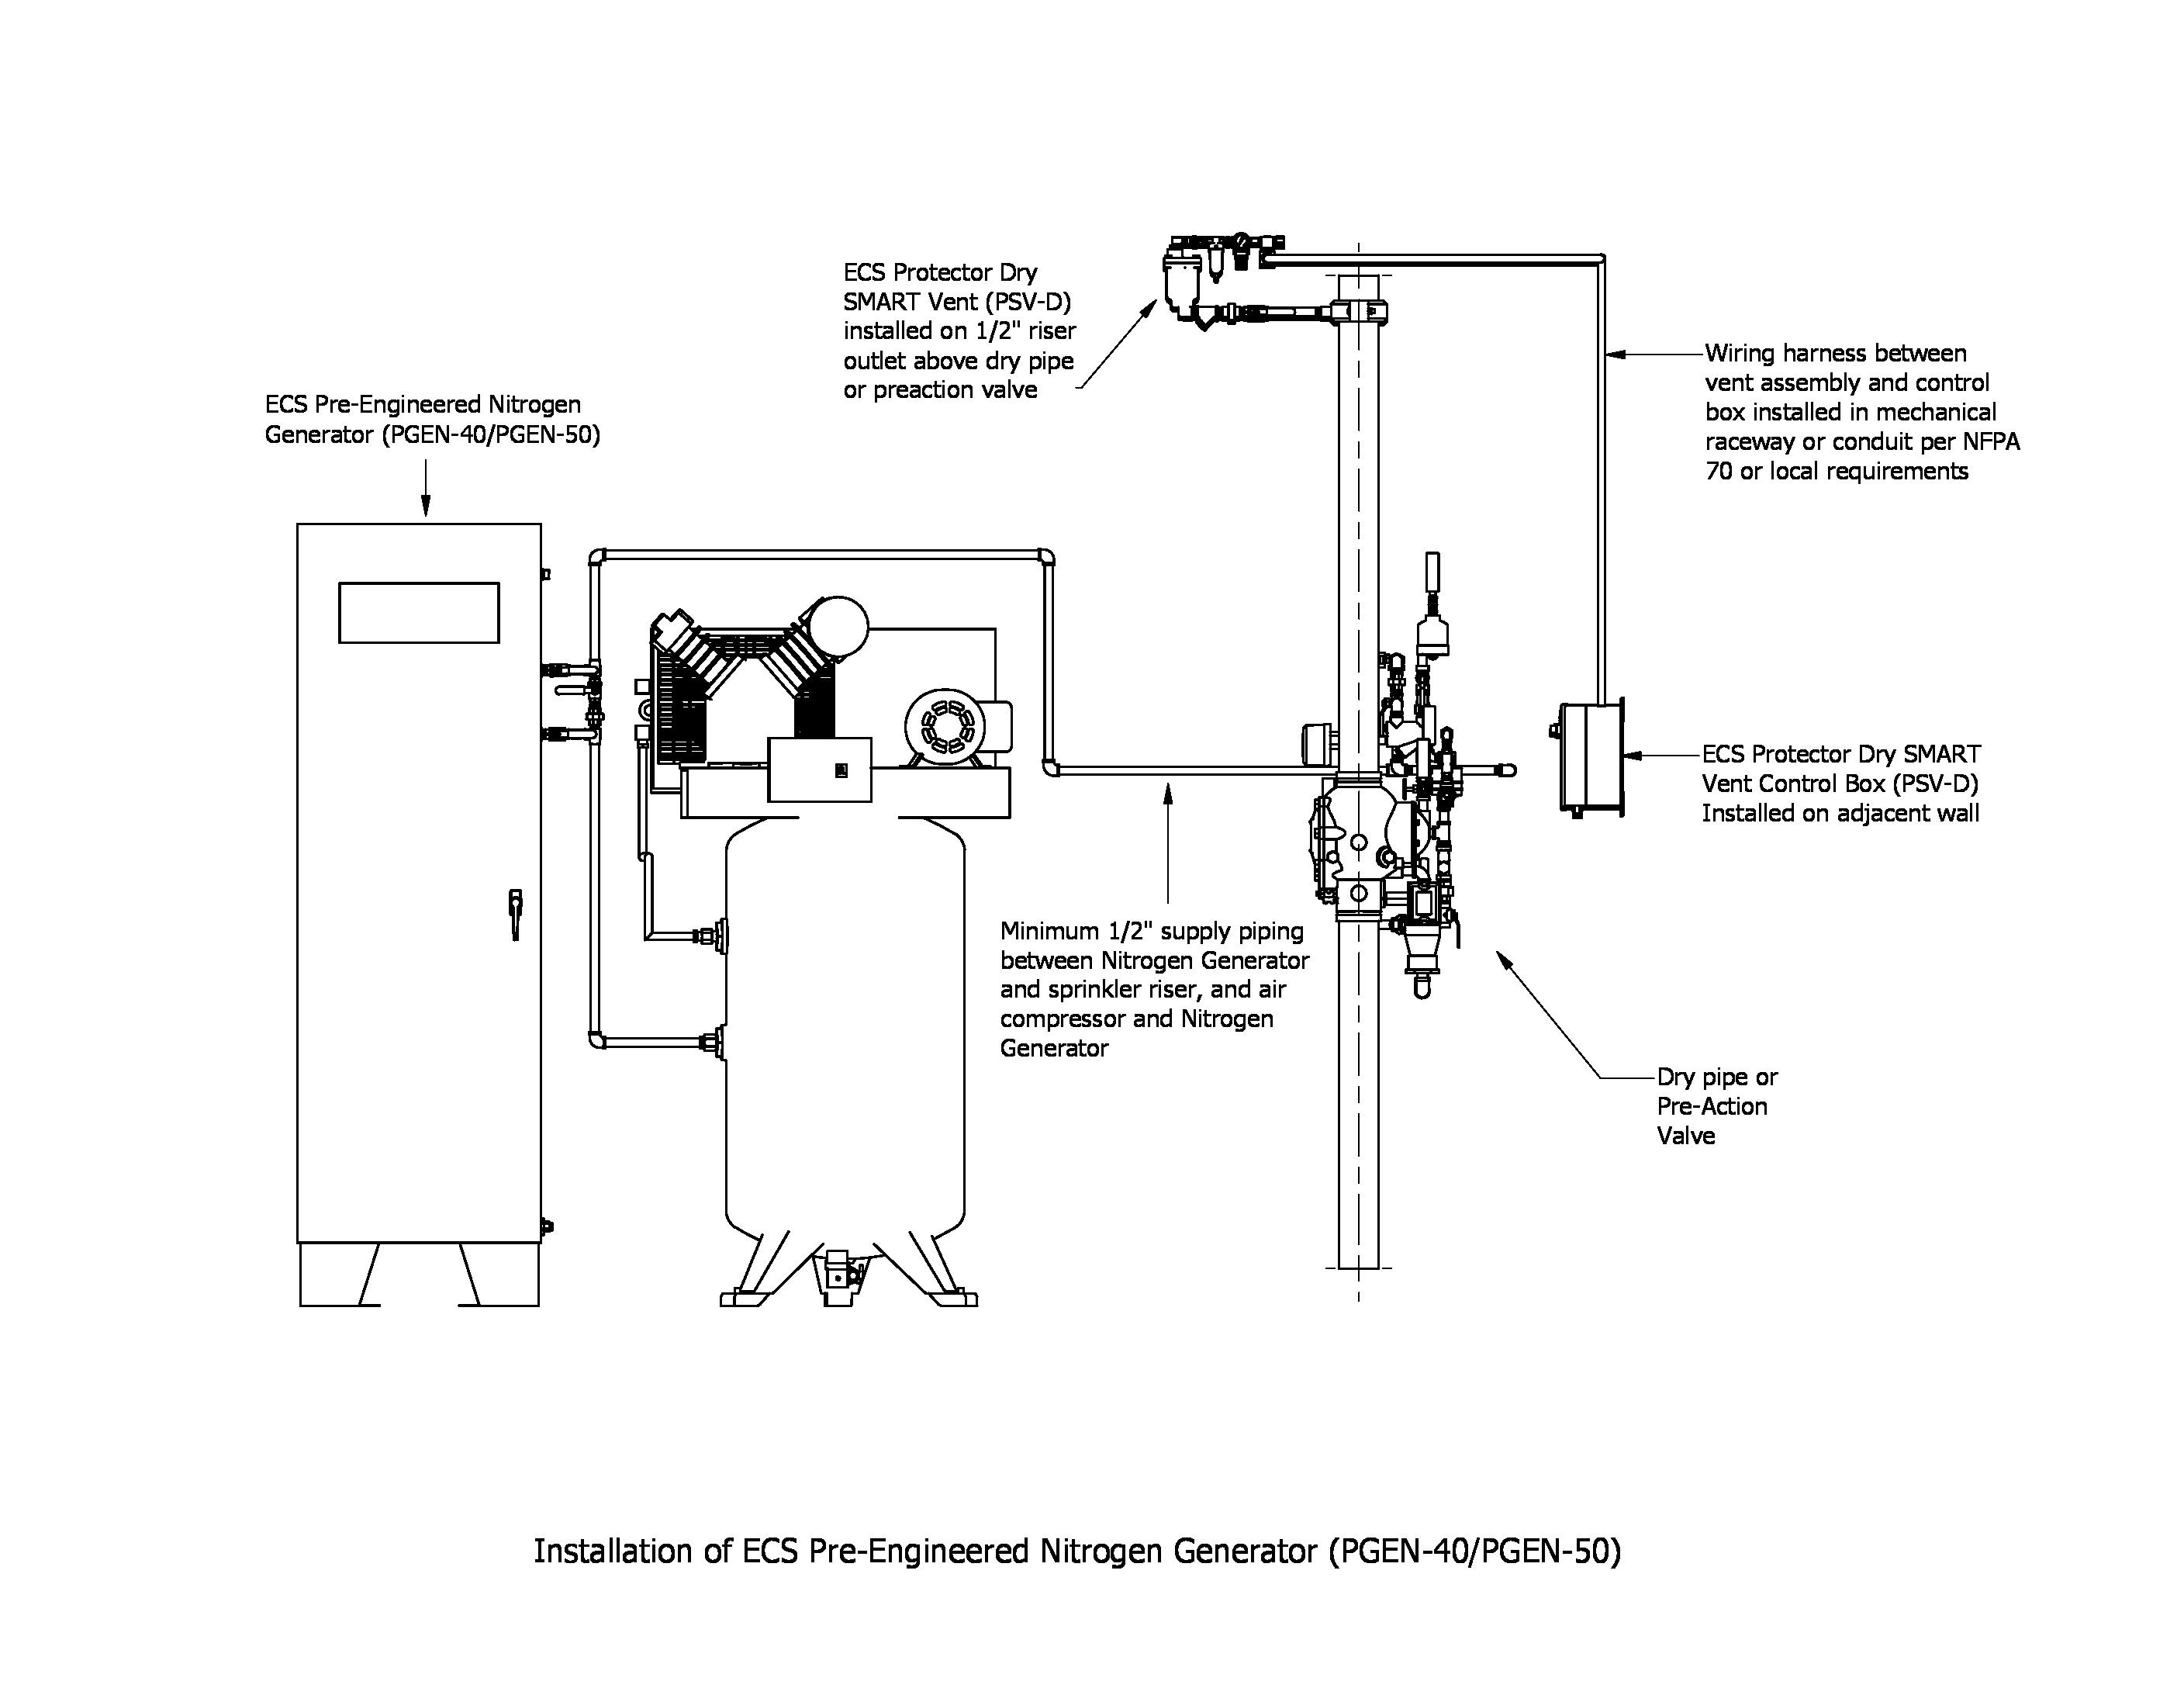 Sprinkler System Master Specification Information | ECS on circuit diagram, how does a microwave work diagram, generator schematic diagram, home generator diagram, generator connection diagram, generator plug diagram, generator building diagram, generator wiring connectors, generator oil diagram, generator radiator diagram, generator exciter diagram, generator rotor diagram, generator hook up diagram, dc armature winding diagram, generator fuel system diagram, electric generator diagram, generator relay diagram, automotive generator diagram, generator solenoid diagram, rv trailer wire diagram,